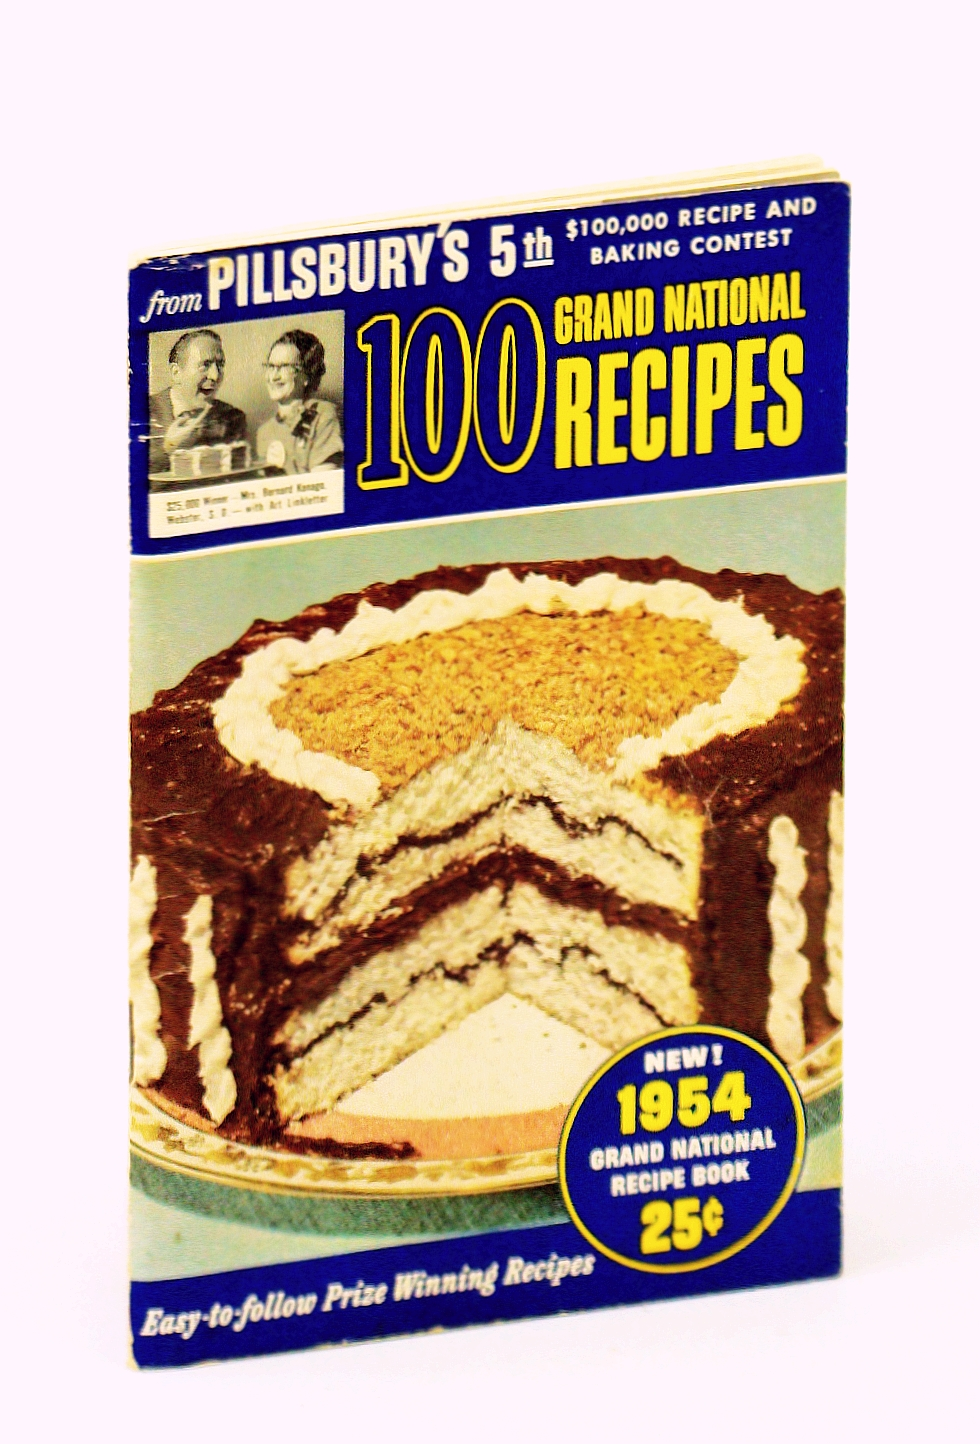 Image for 100 Prize-Winning Recipes from Pillsbury's 5th Grand National Recipe and Baking Contest 1954